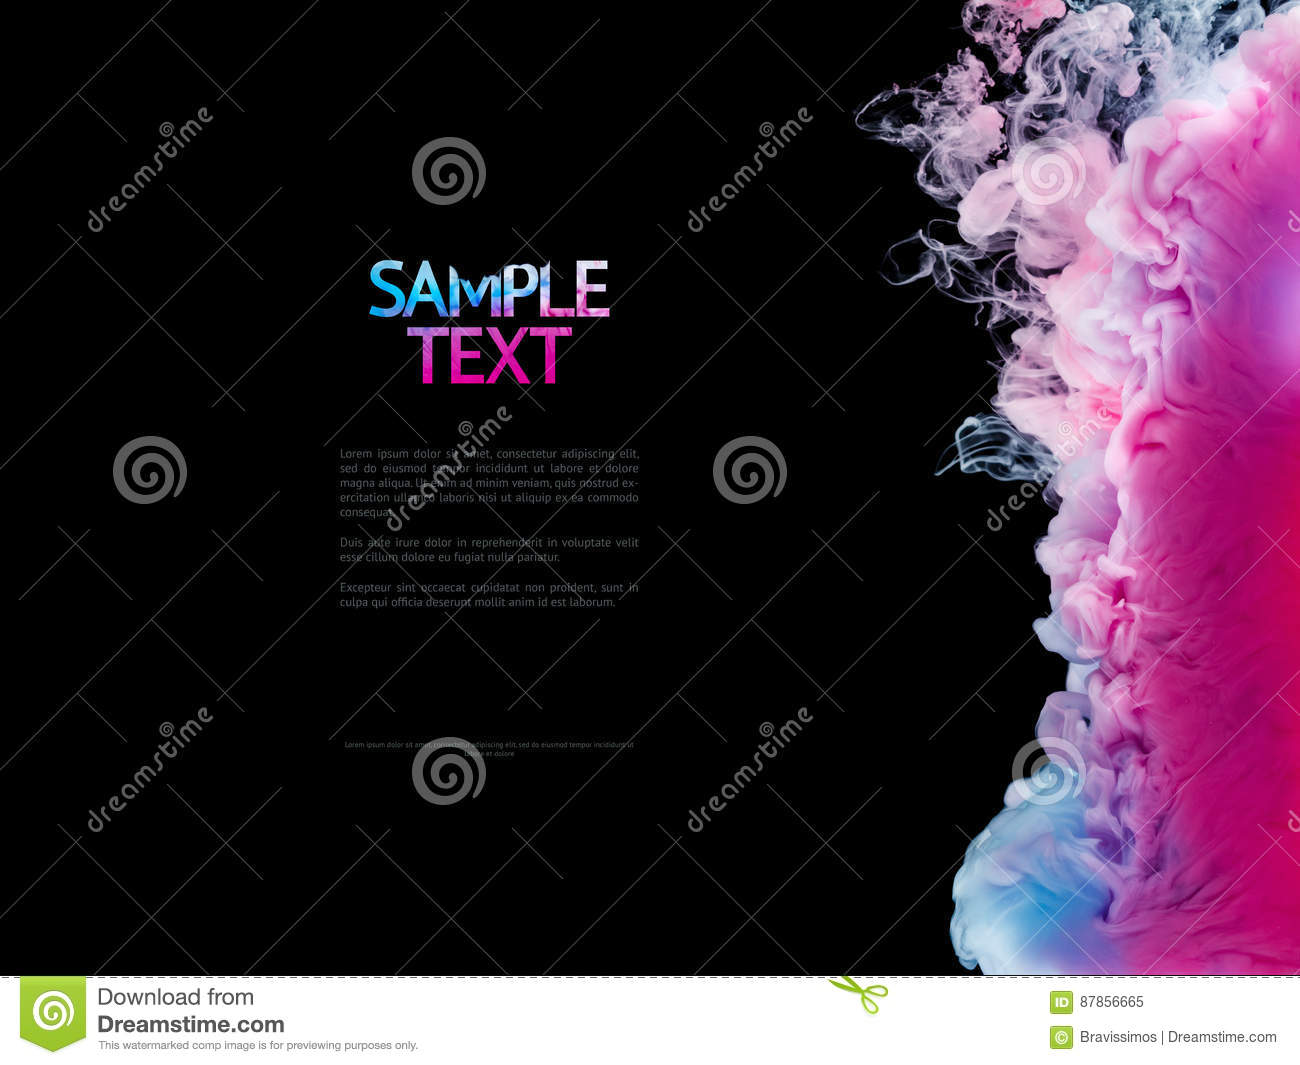 Download Color Splashes Of Ink Isolated On Black Background. Abstract Paint In Water Motion. Swirling Colorful Drops Stock Image - Image of motion, black: 87856665